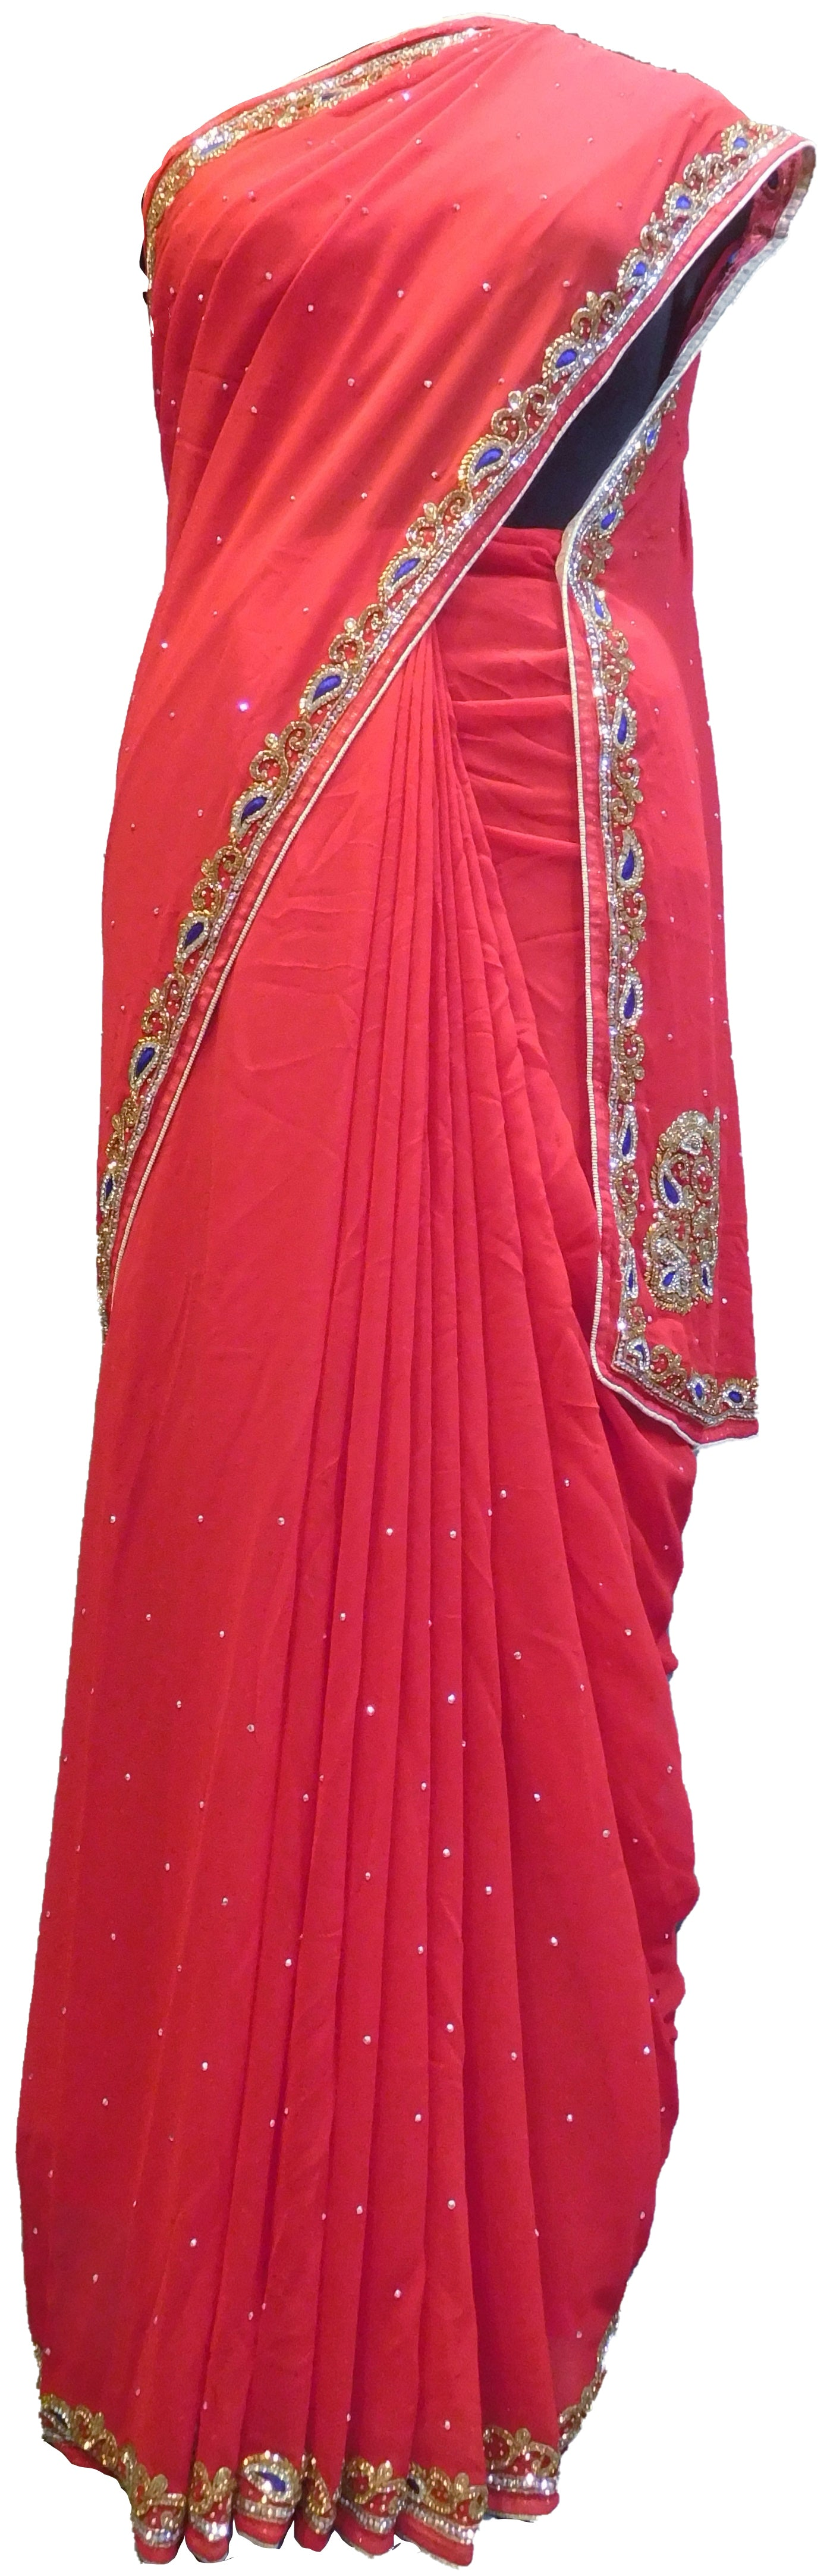 SMSAREE Red Designer Wedding Partywear Georgette Stone Cutdana Beads & Thread Hand Embroidery Work Bridal Saree Sari With Blouse Piece E501